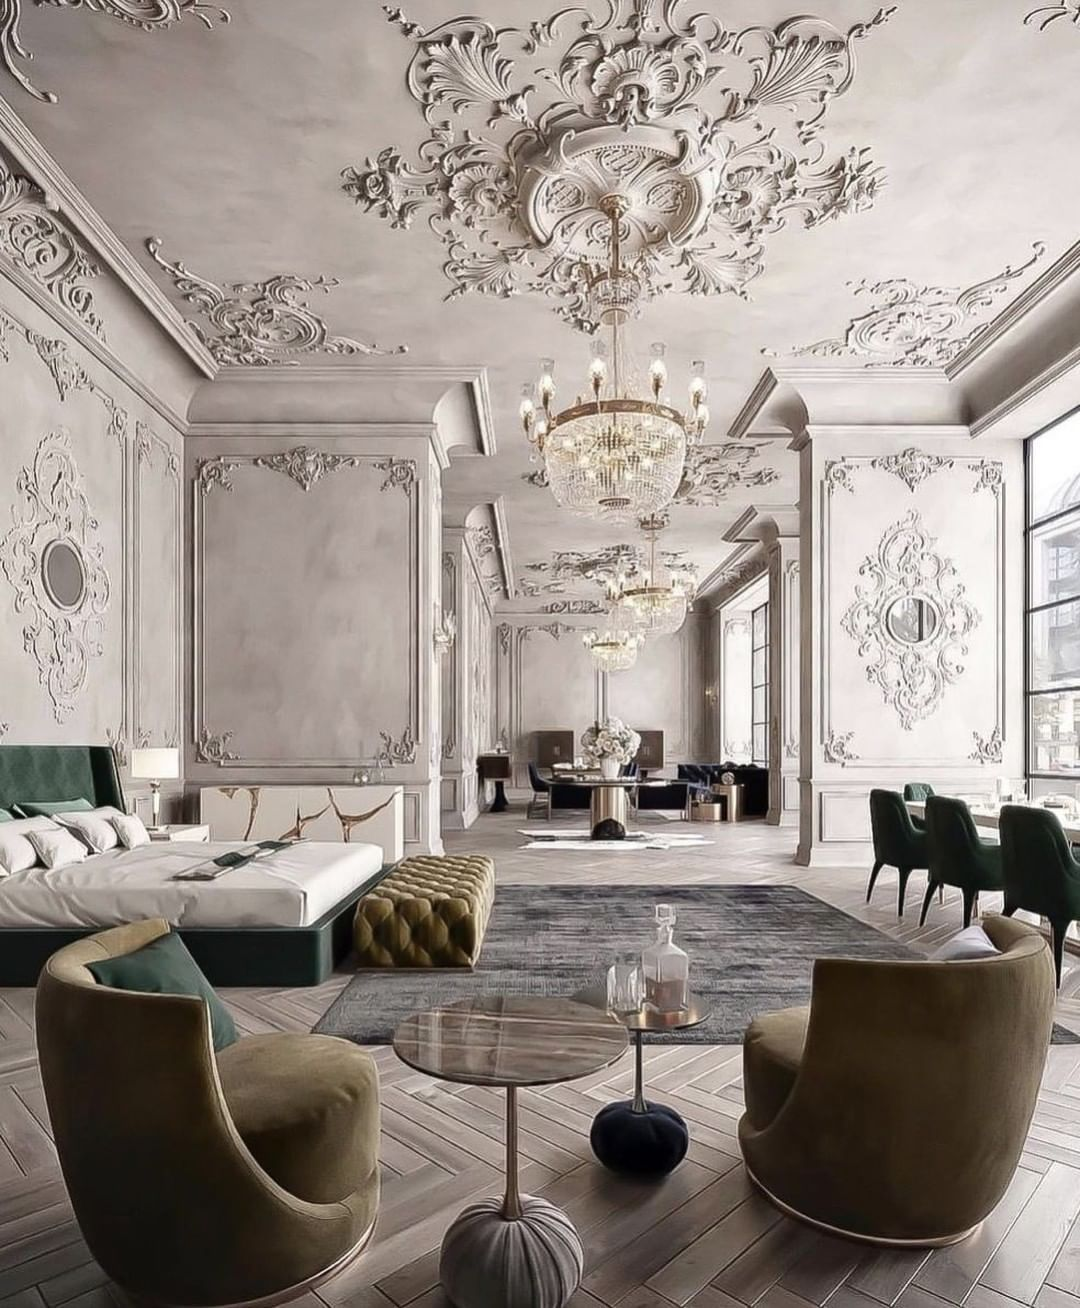 Luxury Interiors On Instagram Don T Be Scared To Mix Styles Look At How Shaunasstage Mixed Classic Interior Design Luxury Interior Design Luxury Interior